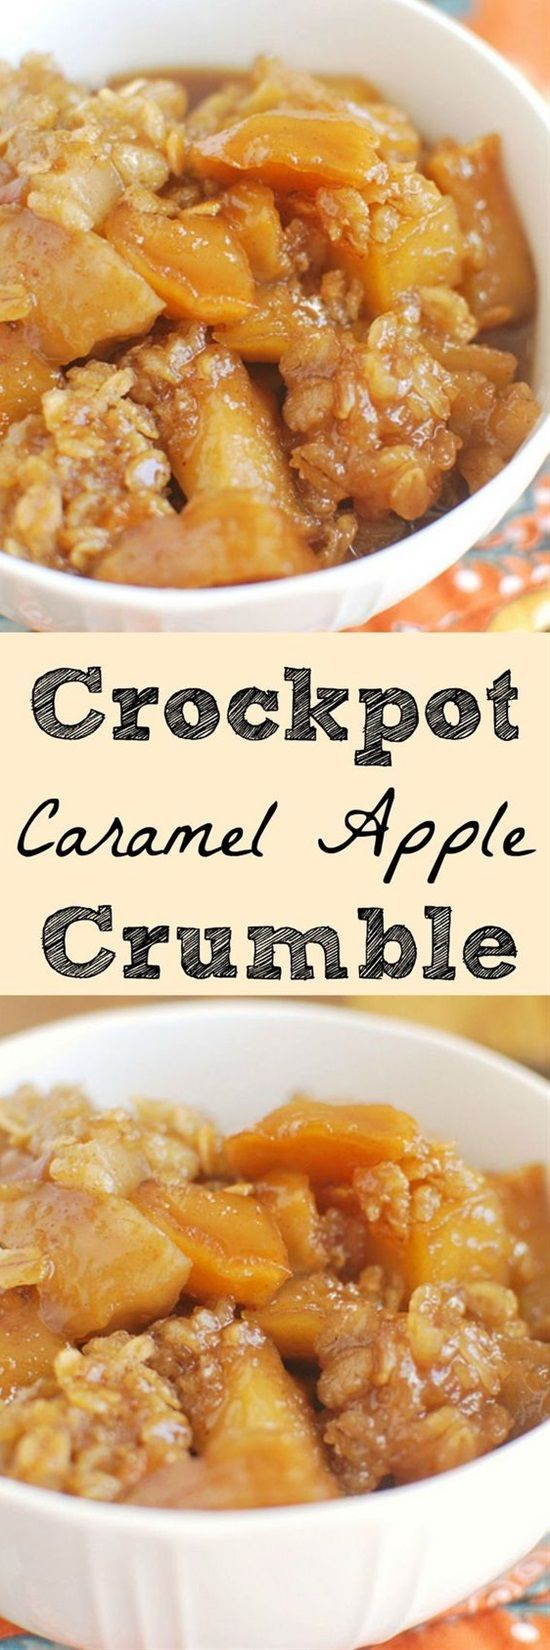 Bring your Crock Pot and let's get to work. We have a bunch of extra-delicious recipes to do with this Crock Pot. Don't you just love how easily you can cook awesome meals with it? We sure do. We brought you a lot of recipes here, so you can try whatever you like. Happy cooking!